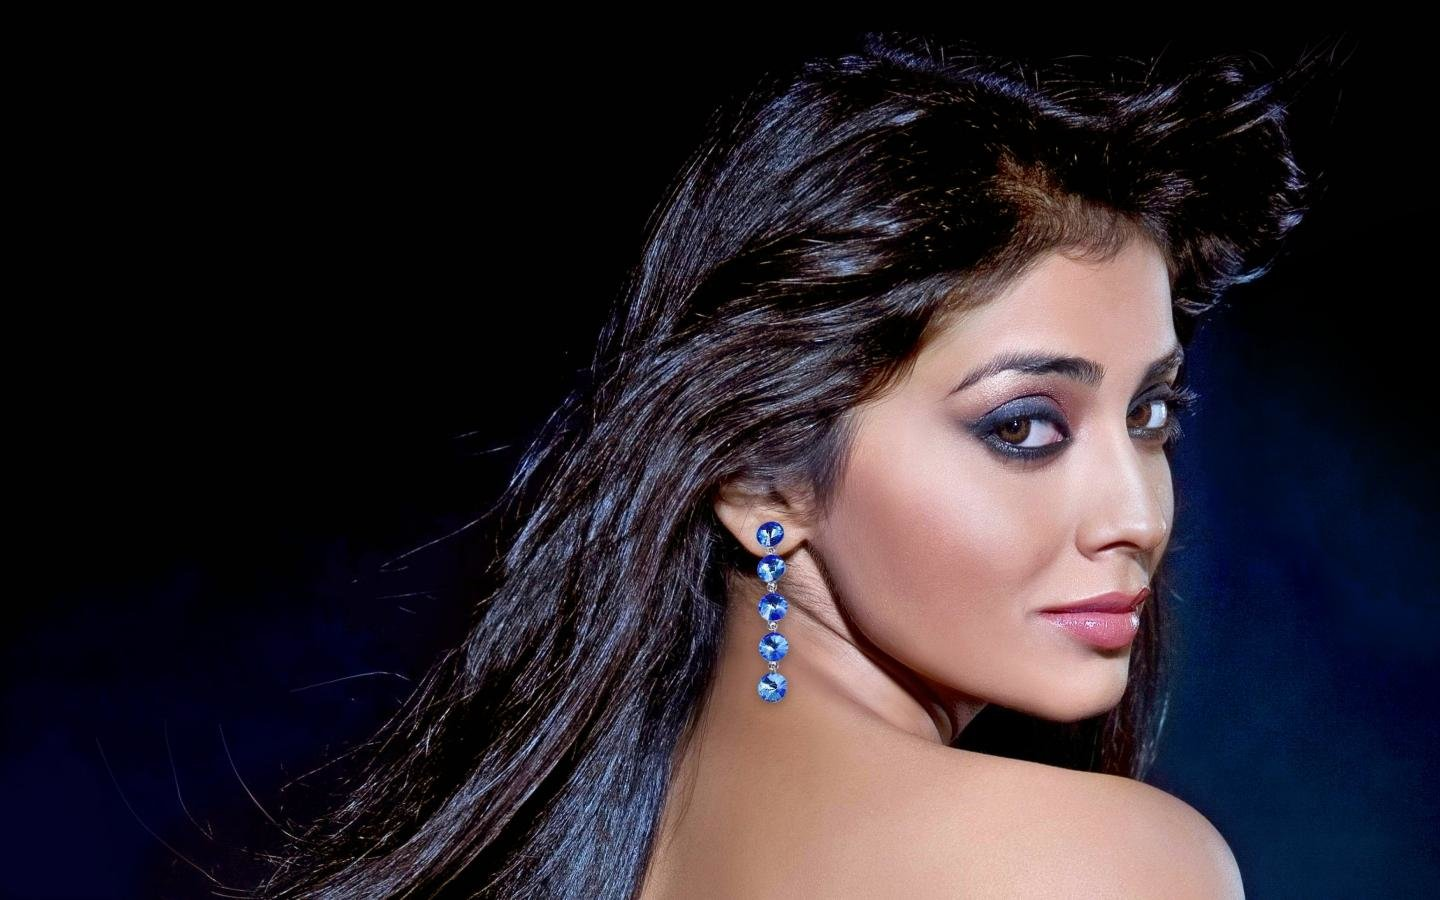 free download shriya saran background id:256574 hd 1440x900 for pc